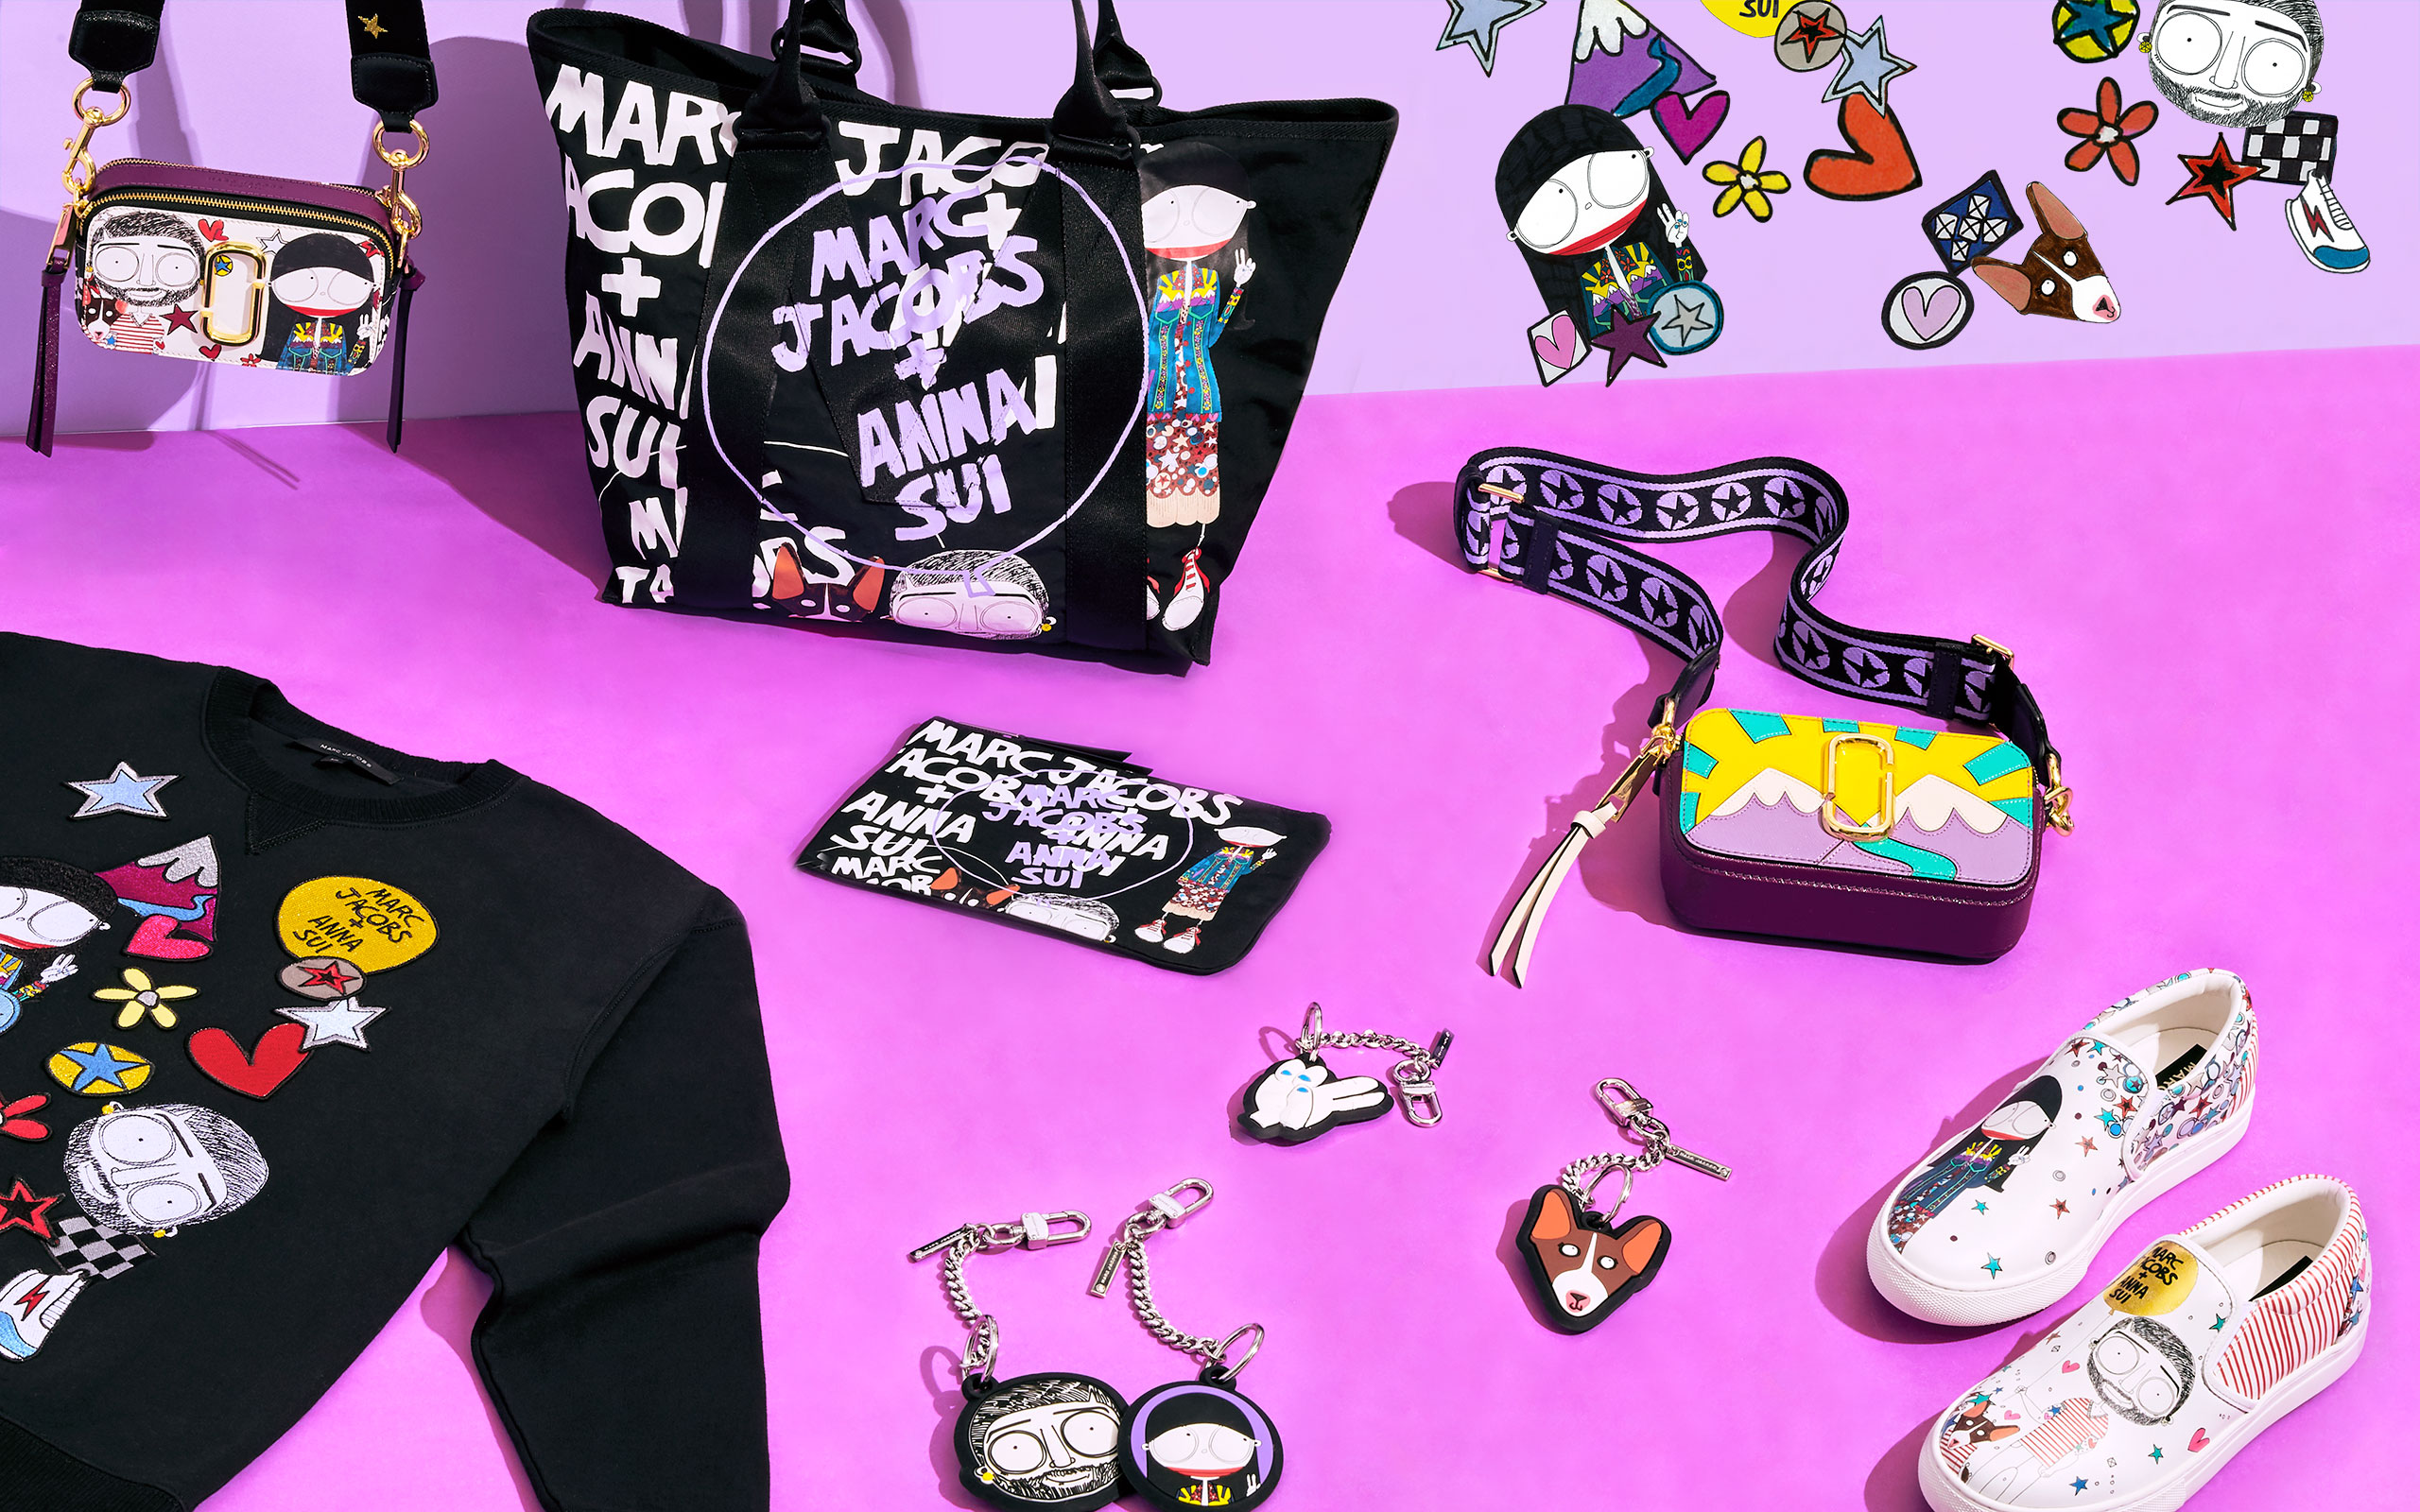 Marc Jacobs × Anna Sui Is Actually Happening